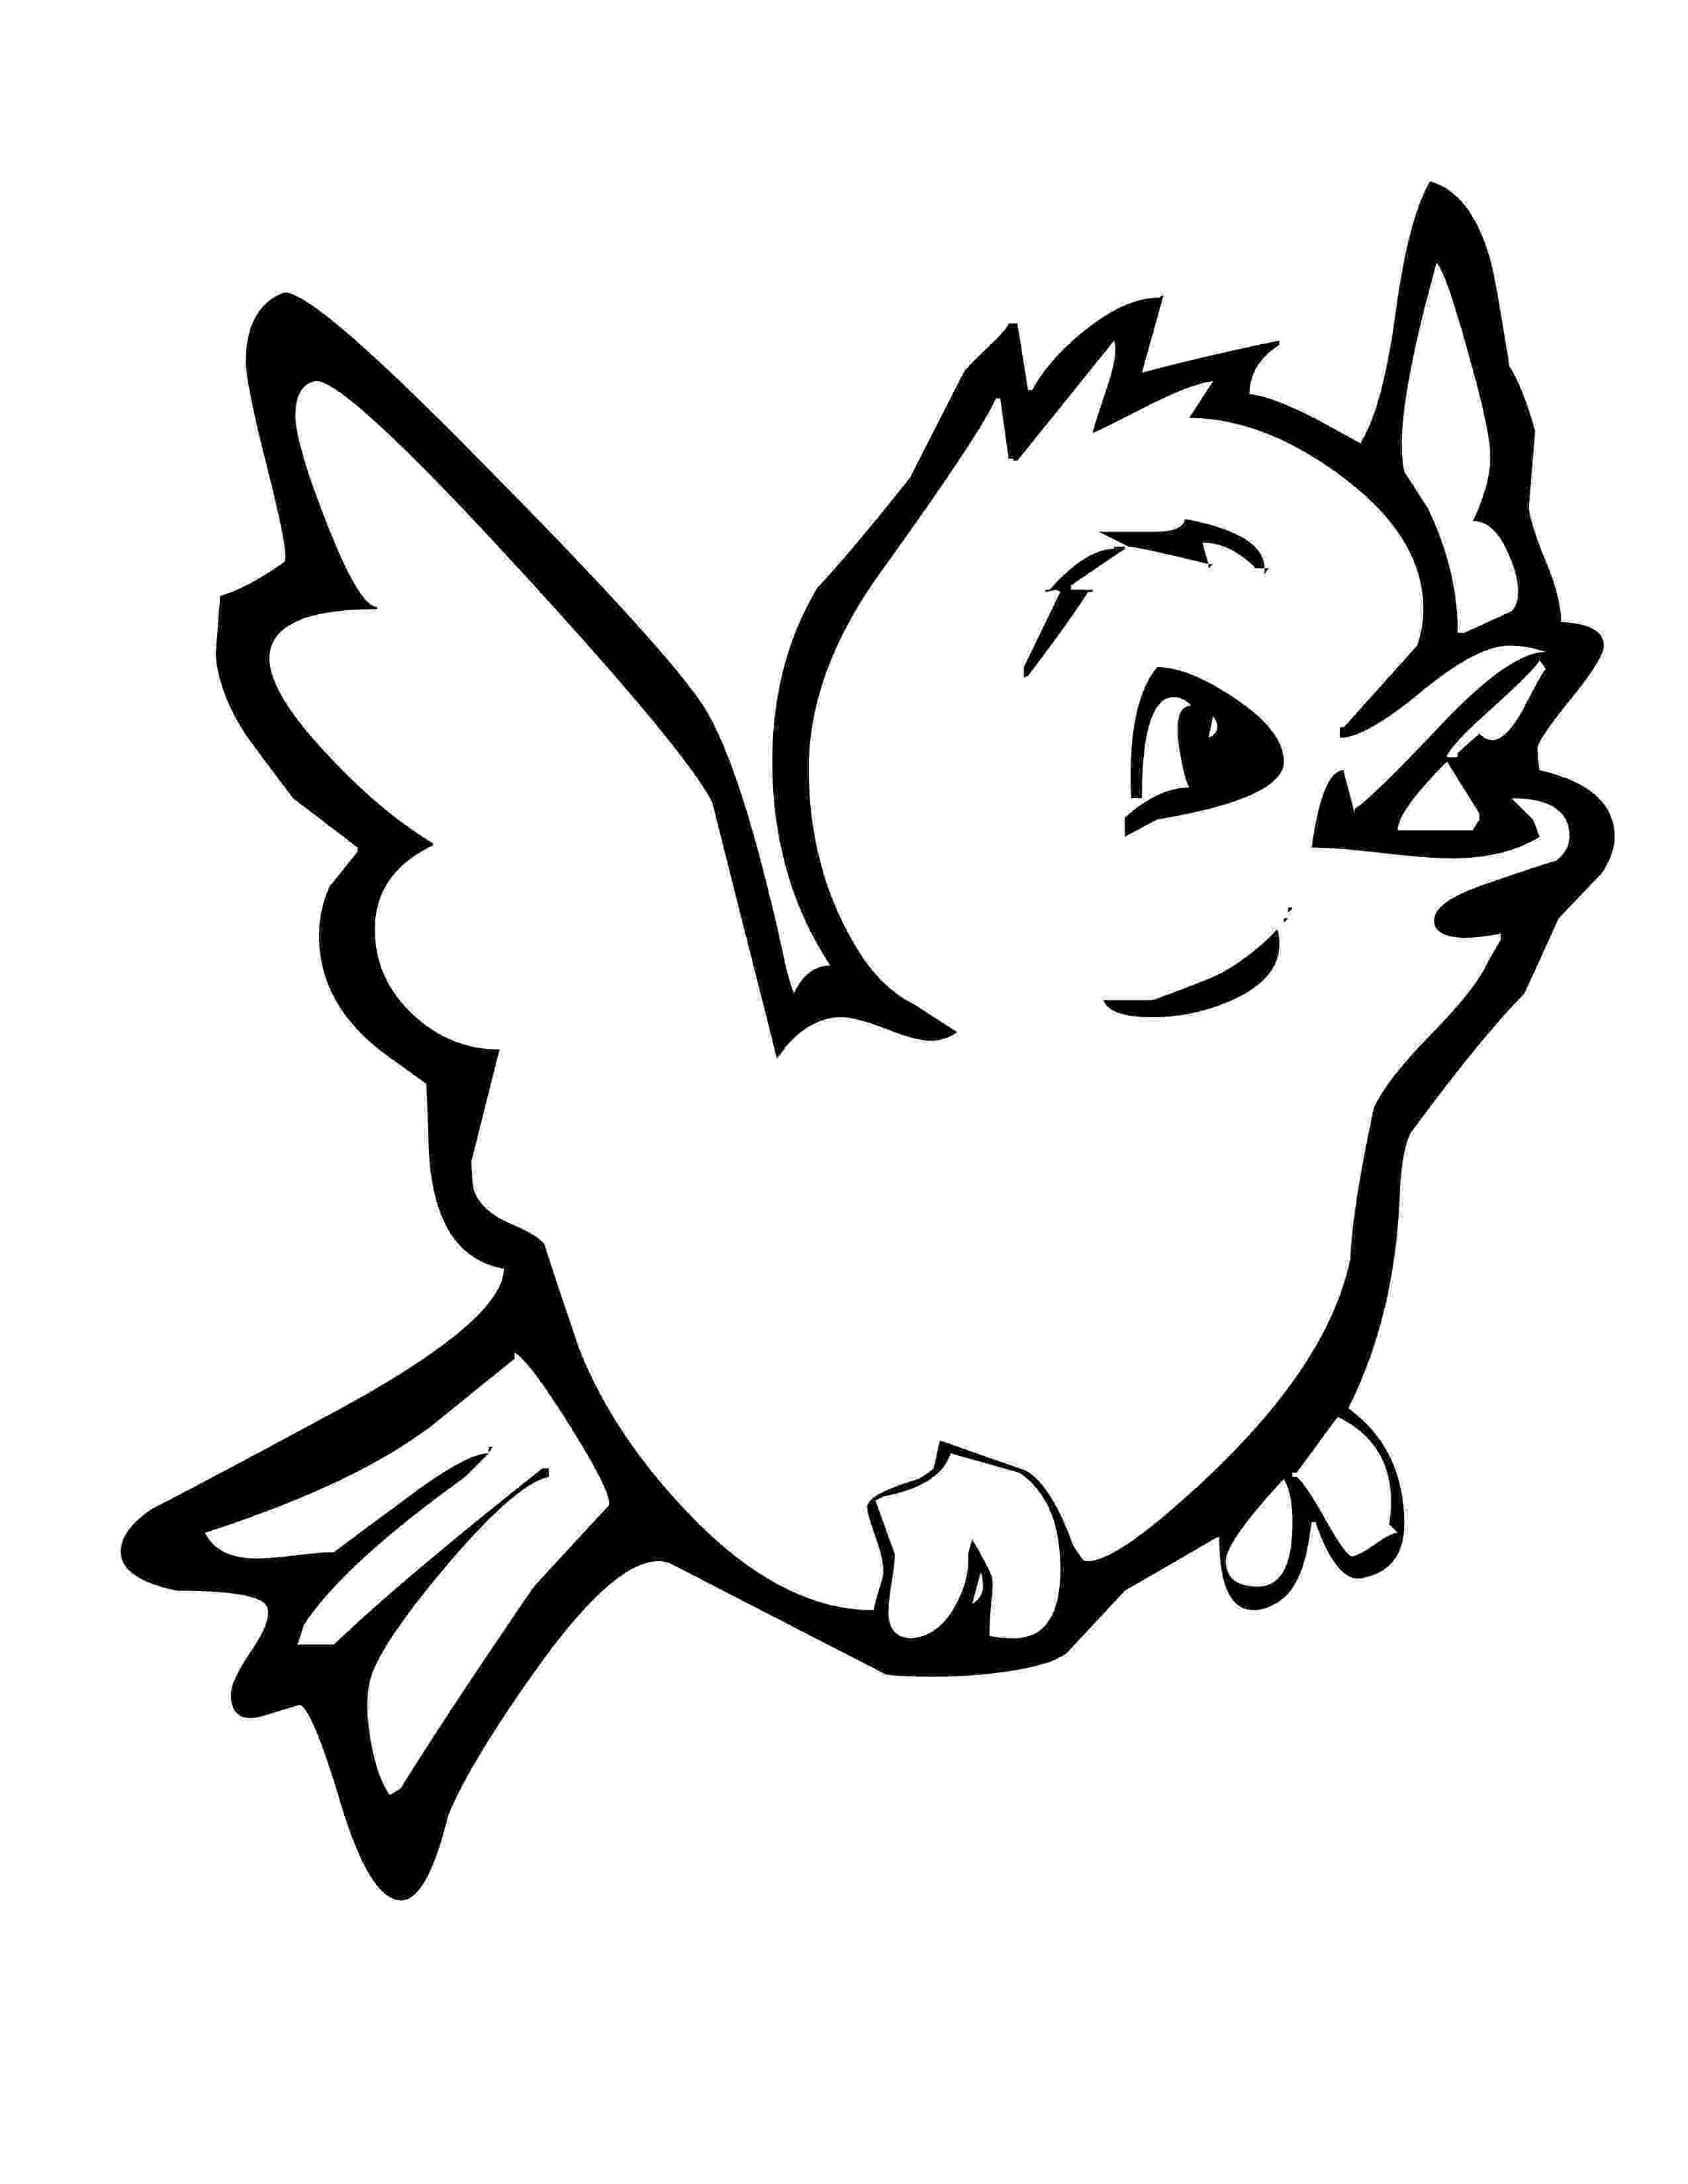 bird colouring pages for kids bird coloring pages getcoloringpagescom colouring pages bird for kids